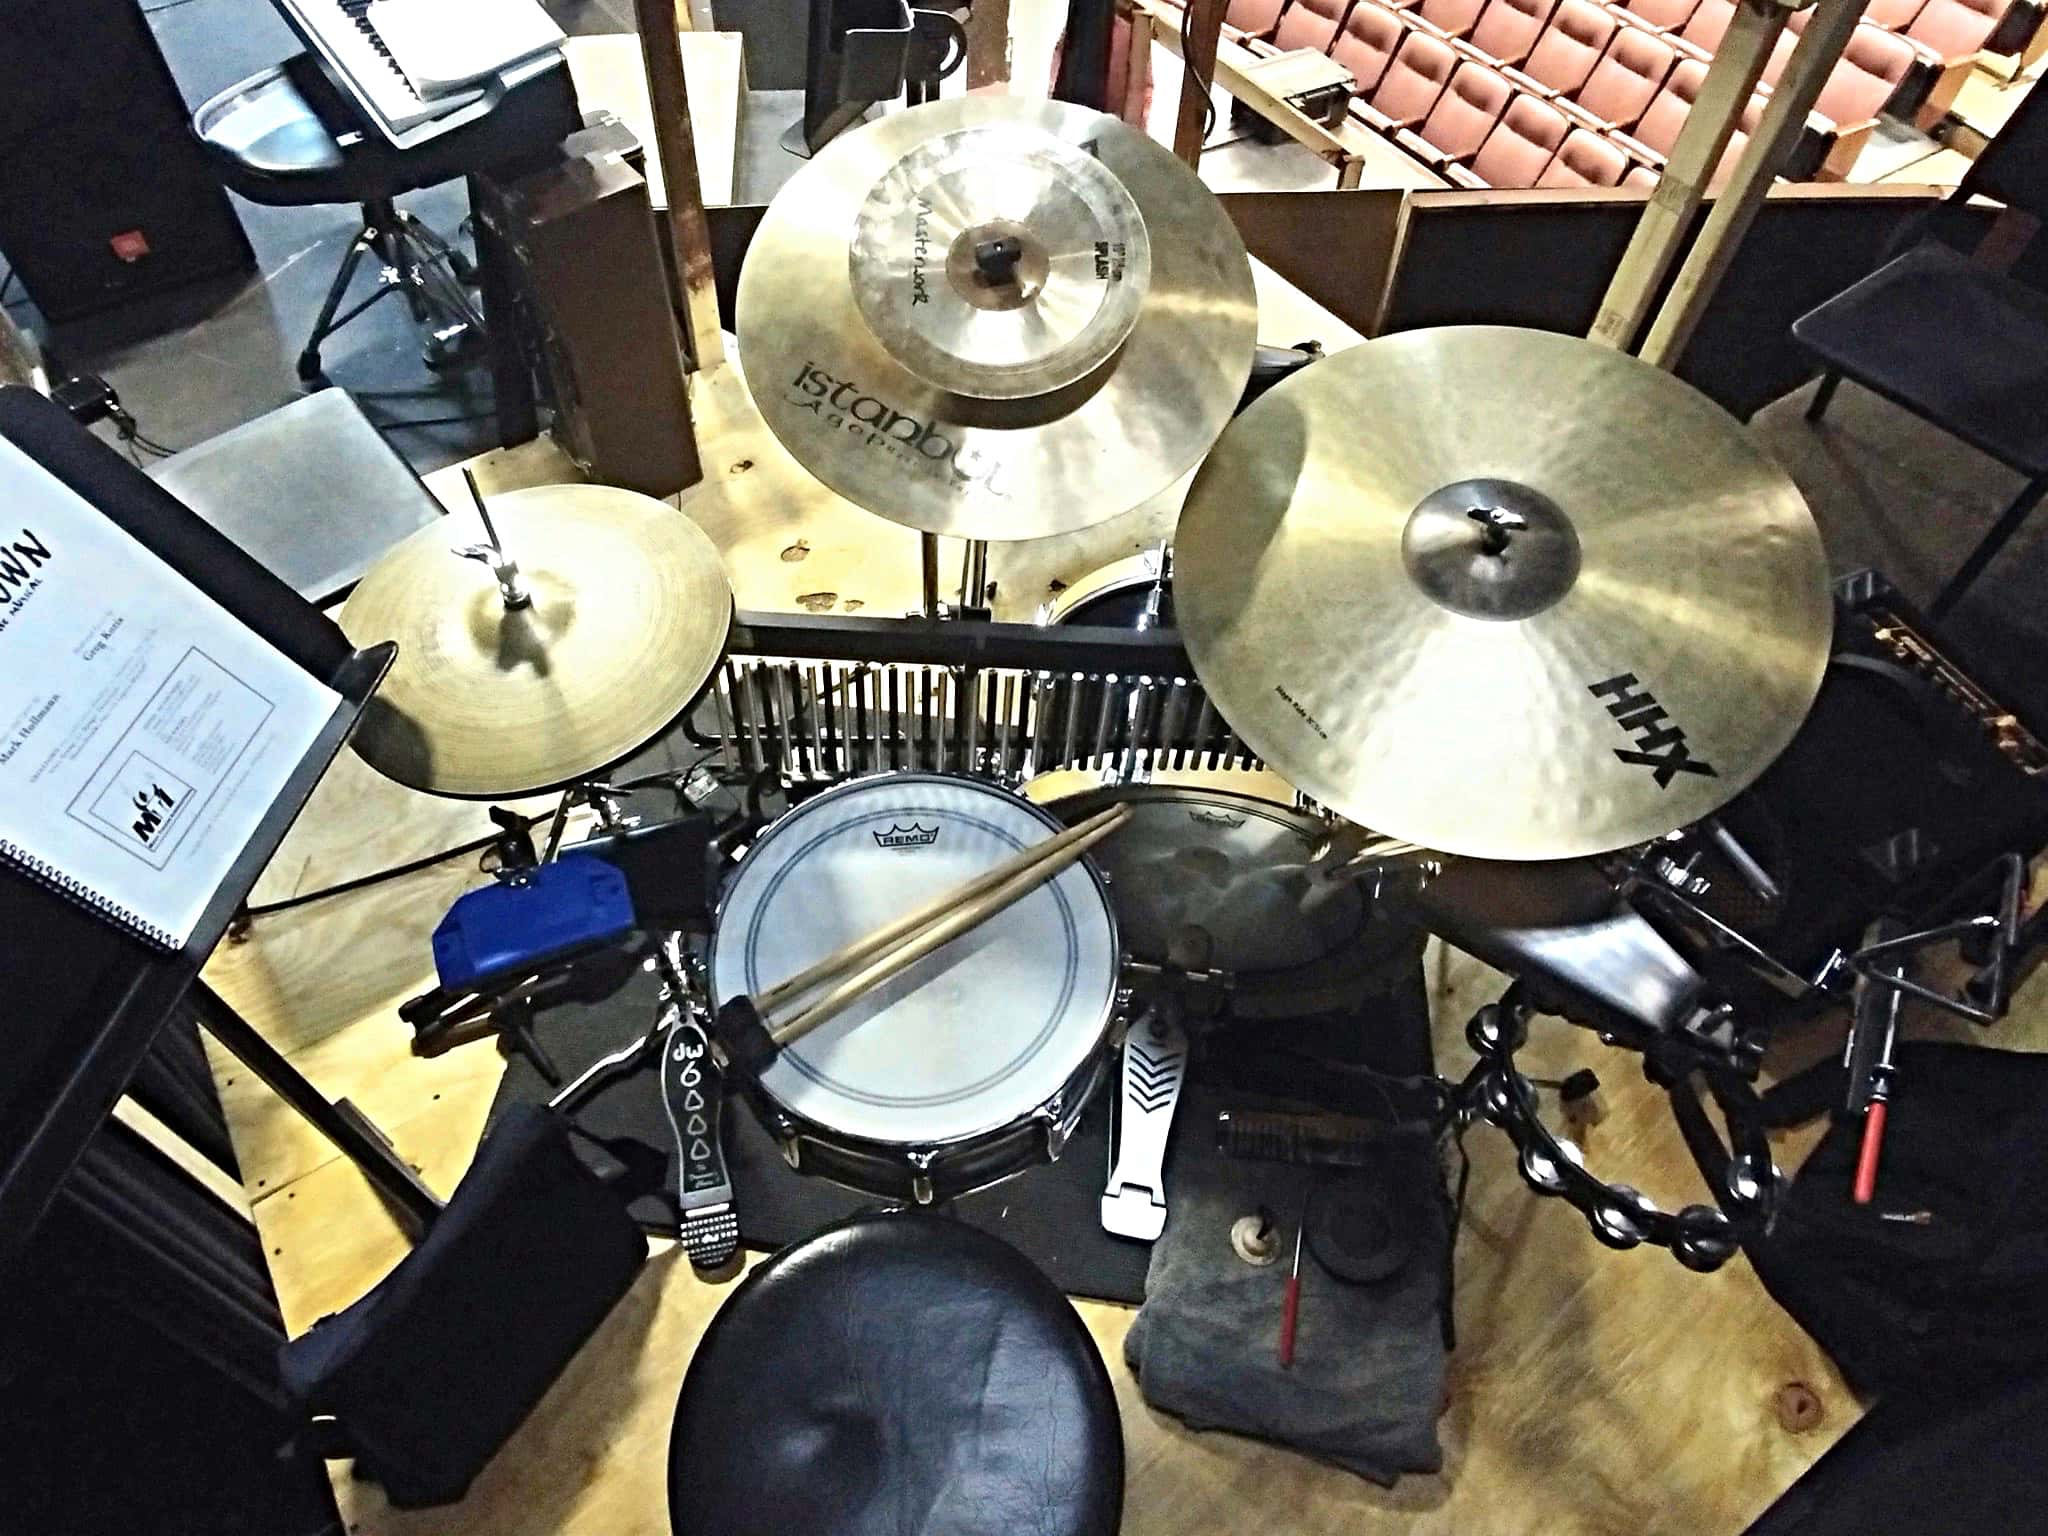 Eli Maniscalco's setup for Urinetown at the YMCA Boulton Center for the Performing Arts in Bay Shore, New York.